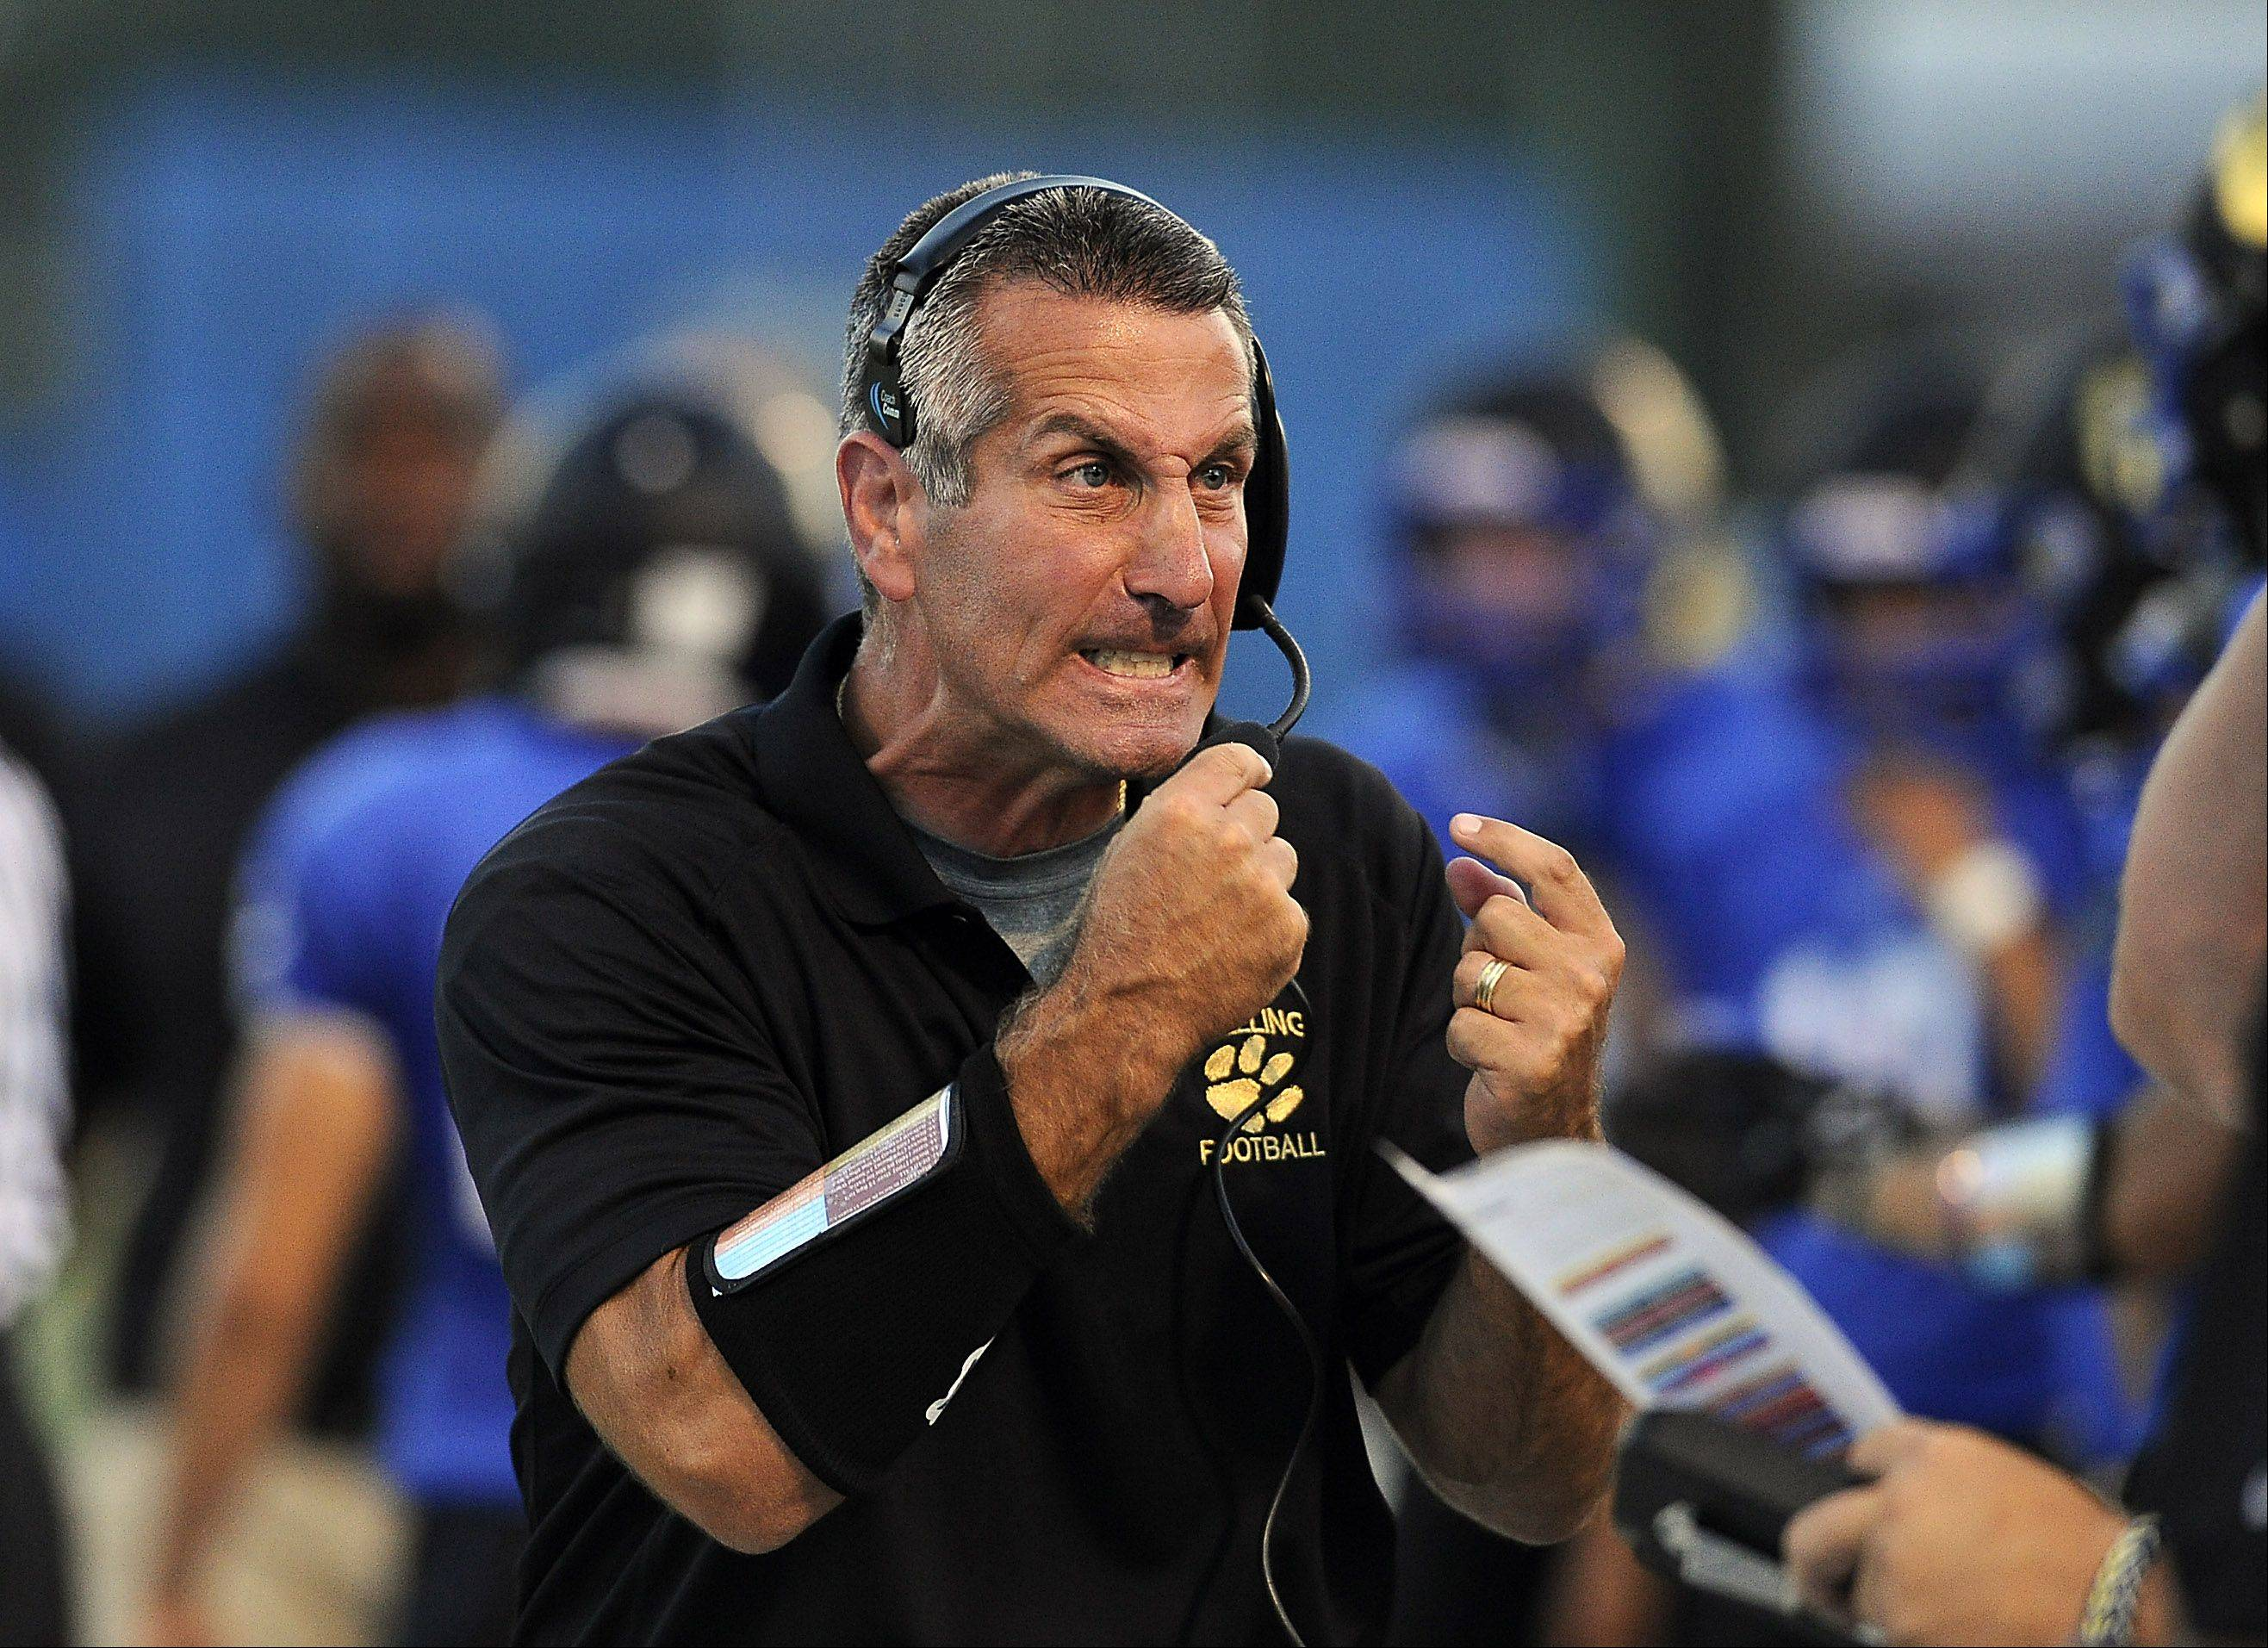 Wheeling head football coach Brent Pearlman gets fired up during Friday's home game against Schaumburg.